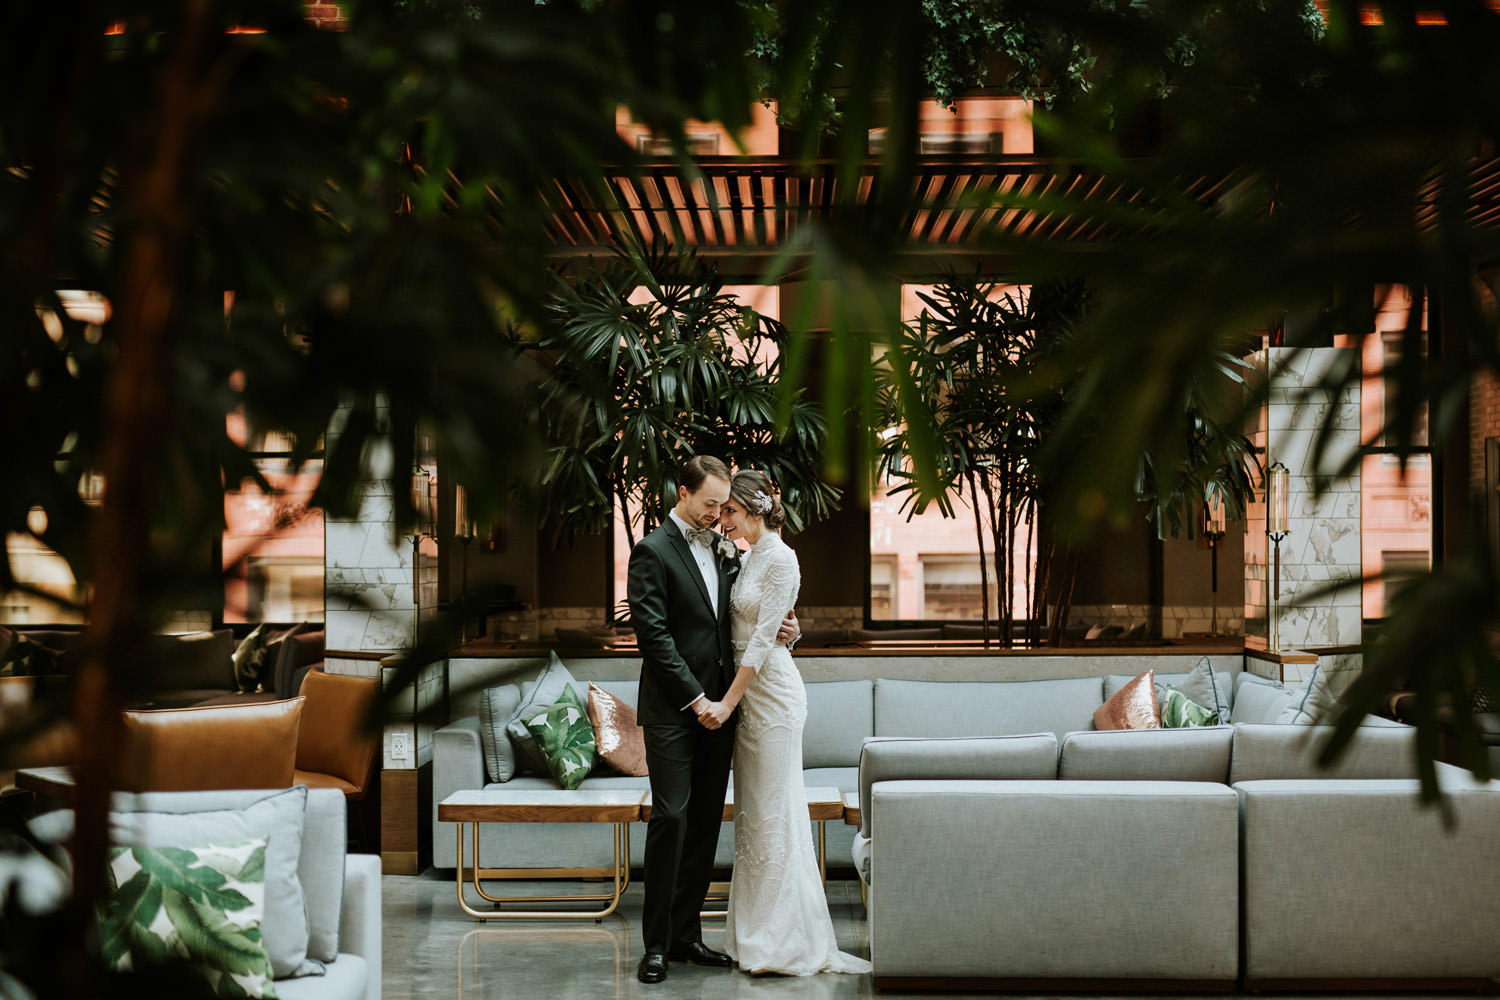 wedding portrait of the bride and groom taken inside the Kimpton Gray hotel on their wedding day